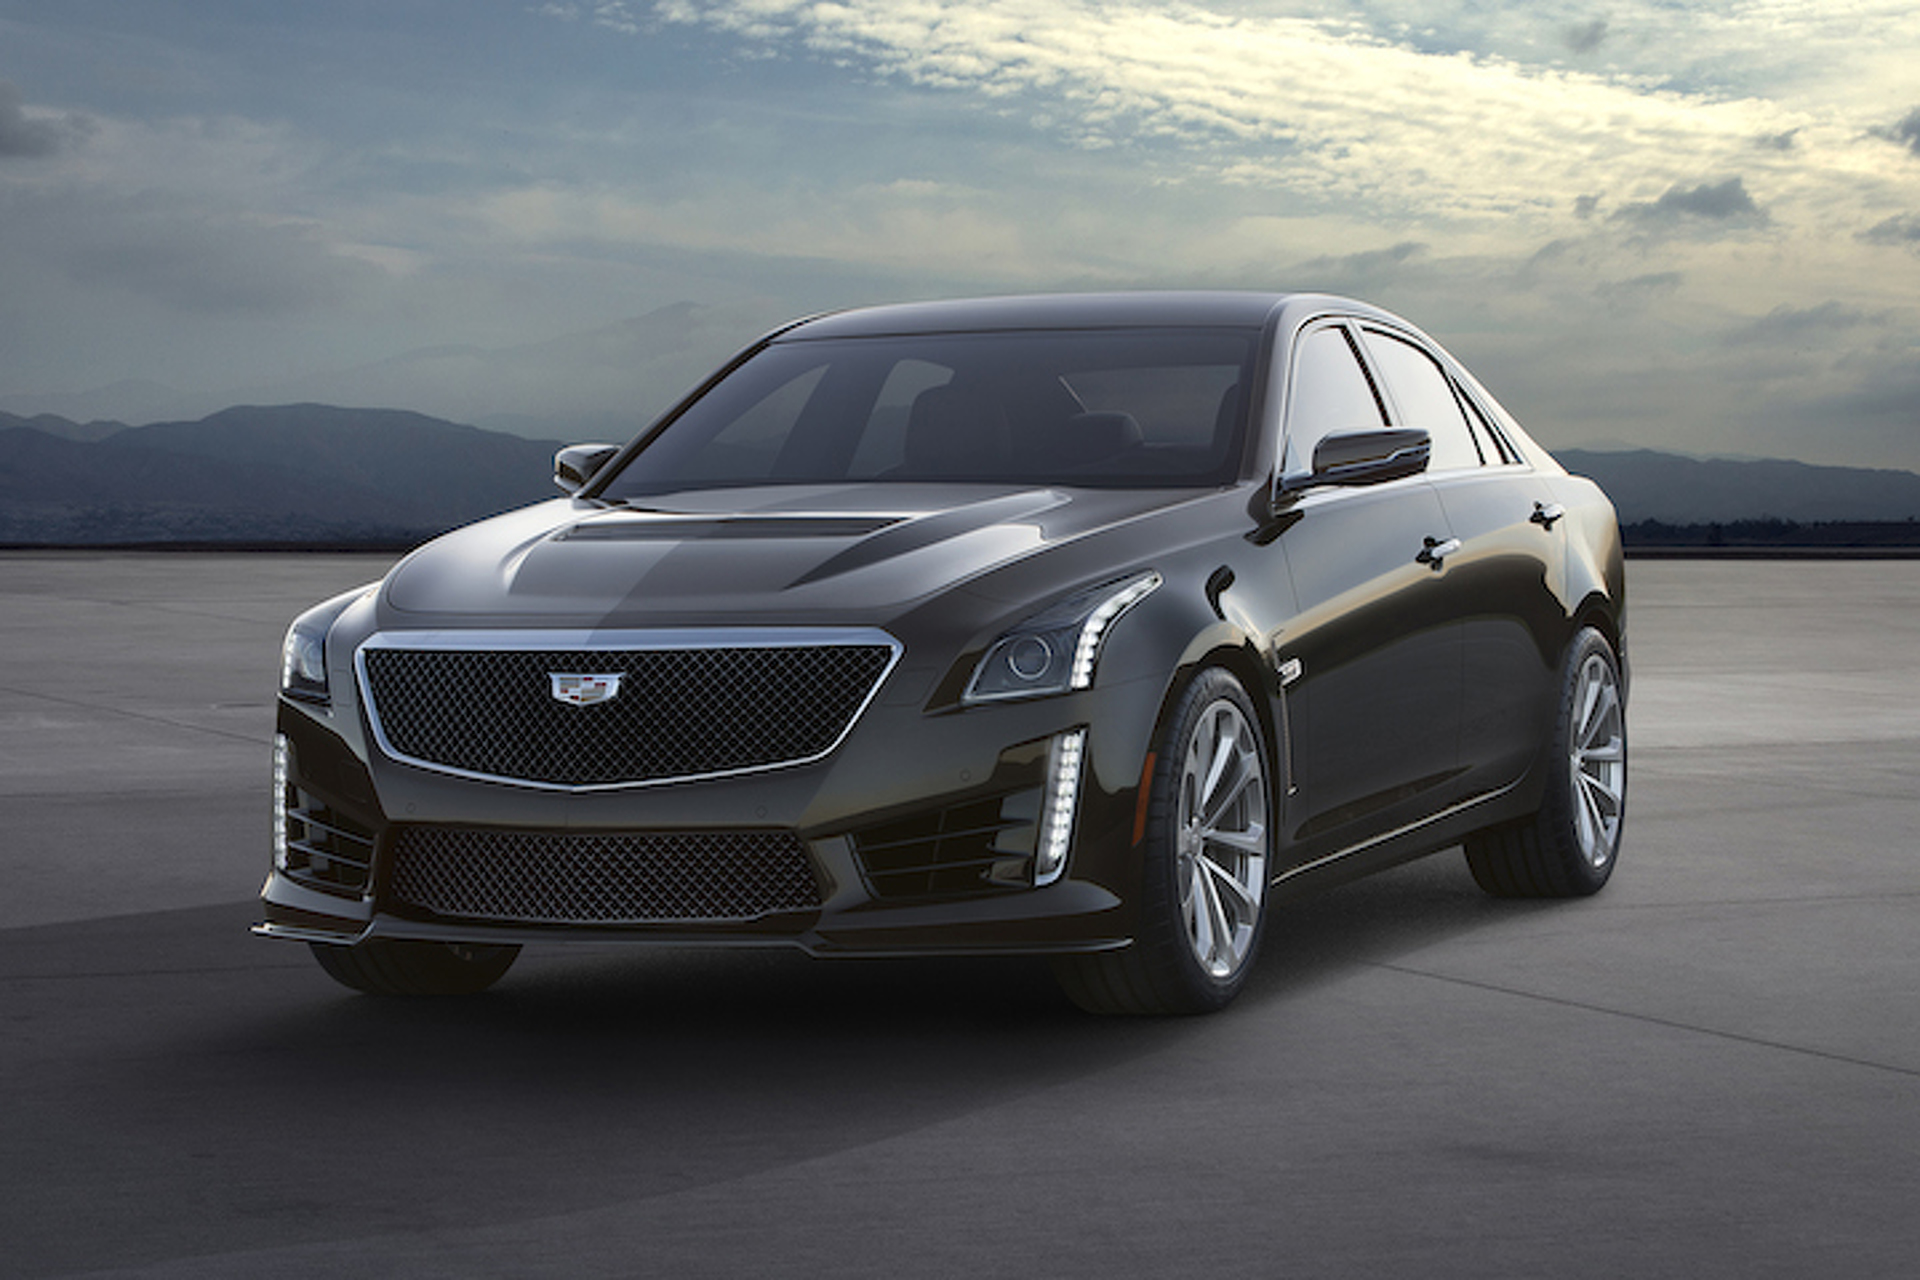 2016 Cadillac CTS-V Wagon: Want it, Can't Have It